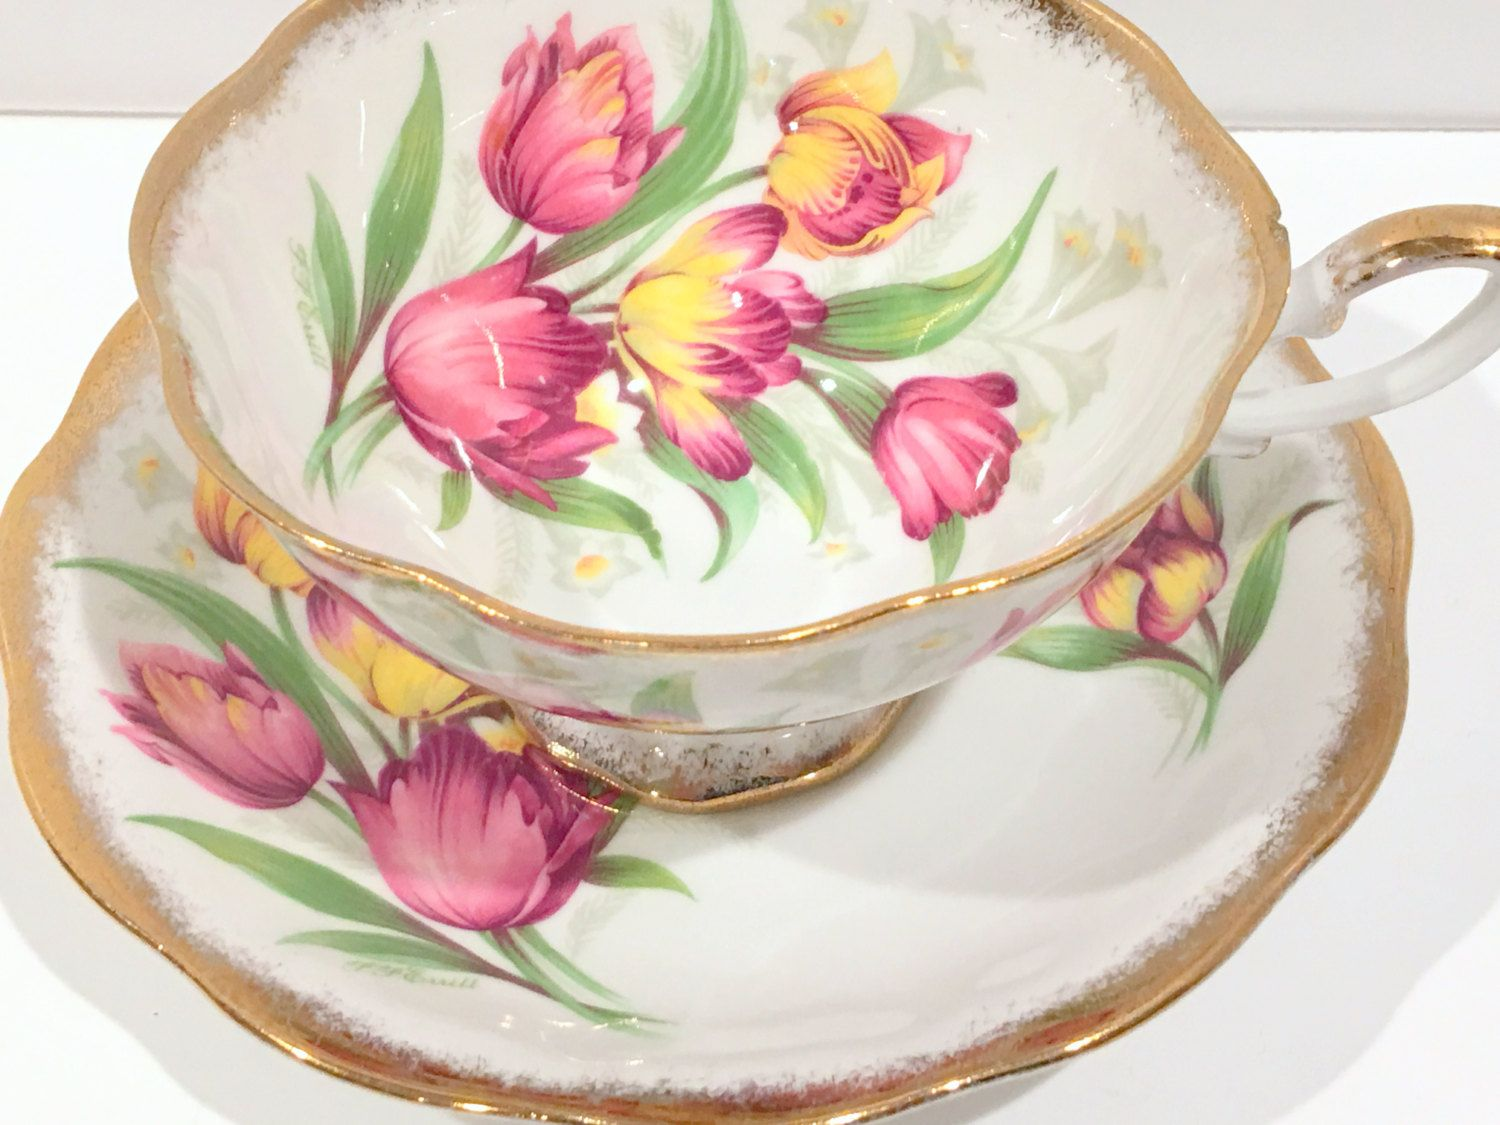 Royal Standard Tea Cup and Saucer, Tulip Cups, Fantasy Pattern, Tea Cups Vintage, Hand Painted Cups, Antique Tea Cups, Antique Teacups by AprilsLuxuries on Etsy